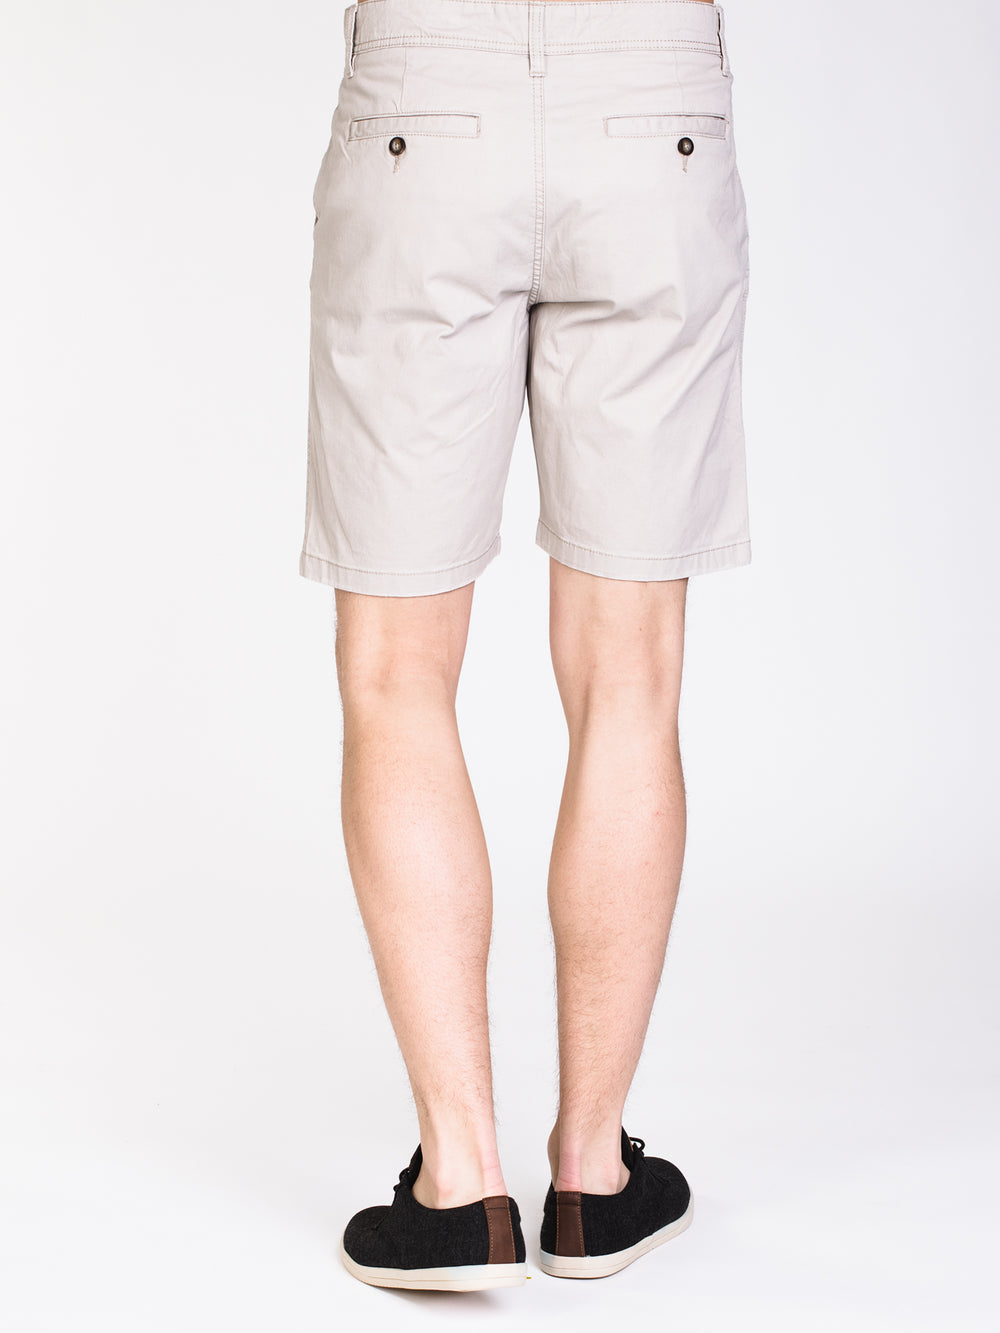 MENS CALEB SLIM SOLID - BONE - CLEARANCE